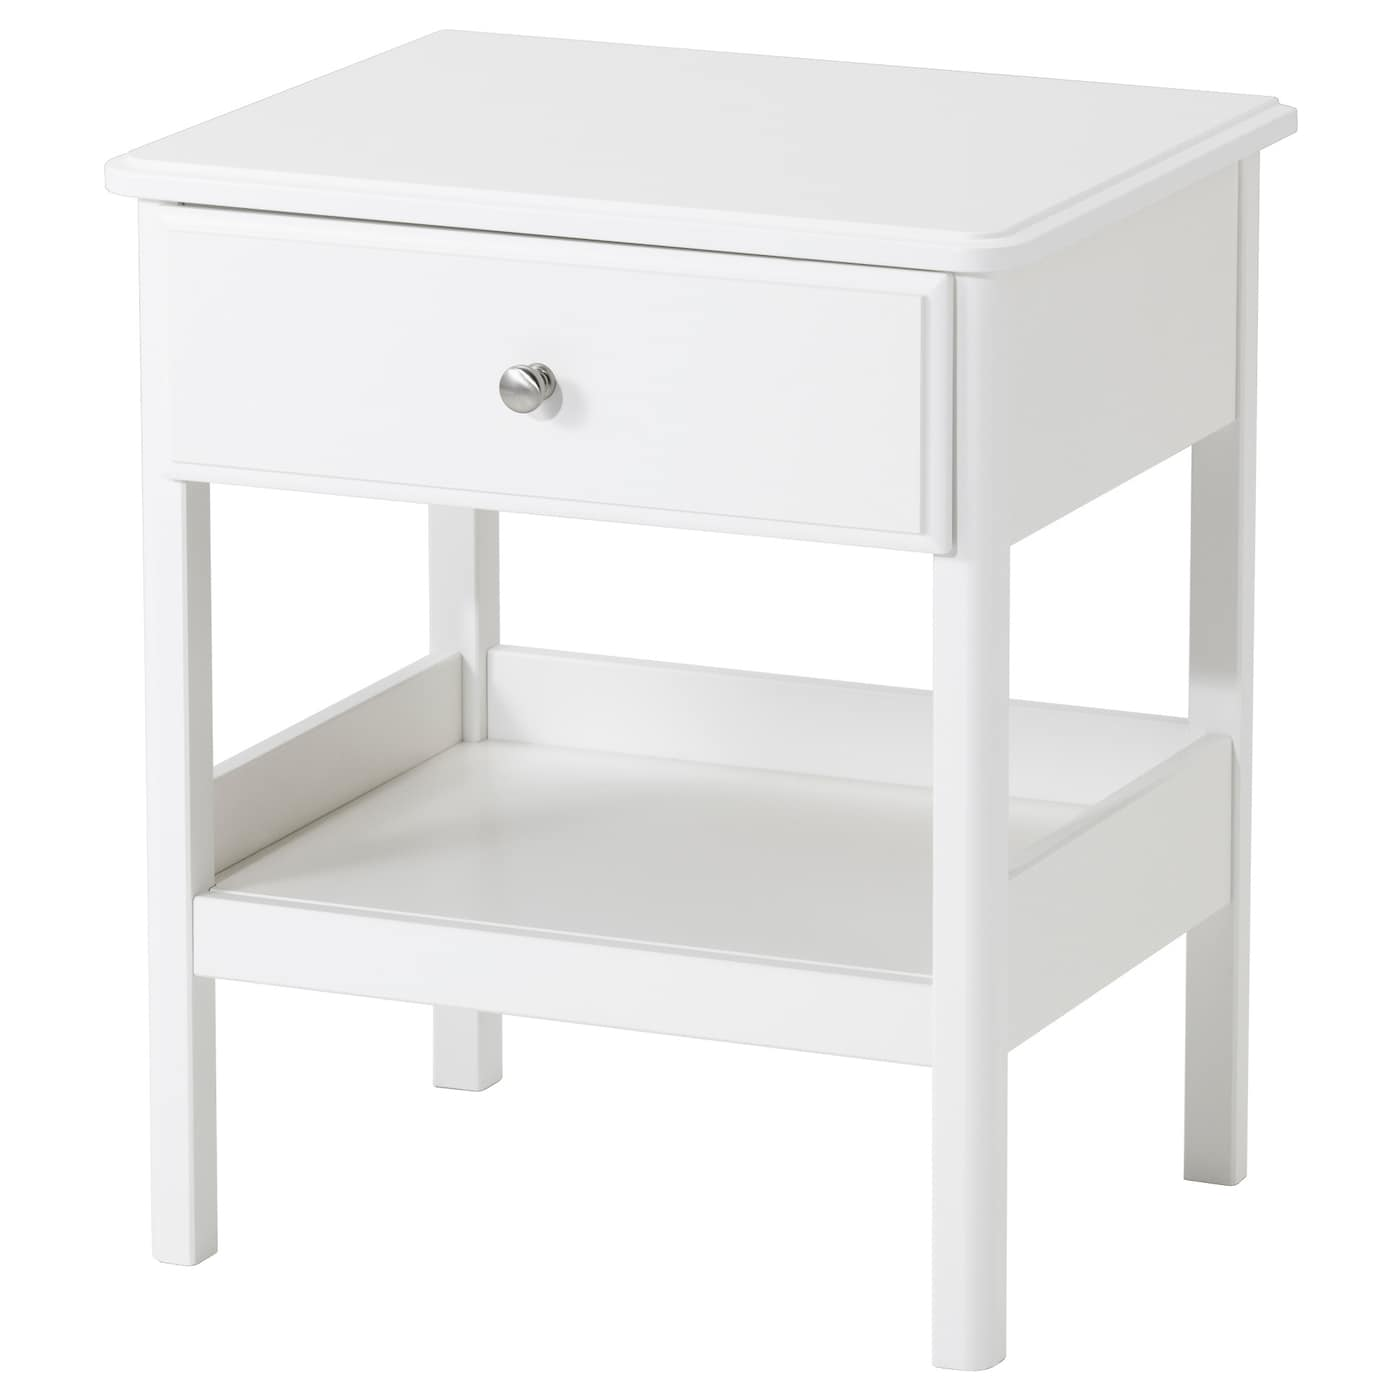 Tyssedal bedside table white 51x40 cm ikea for Table ikea blanche